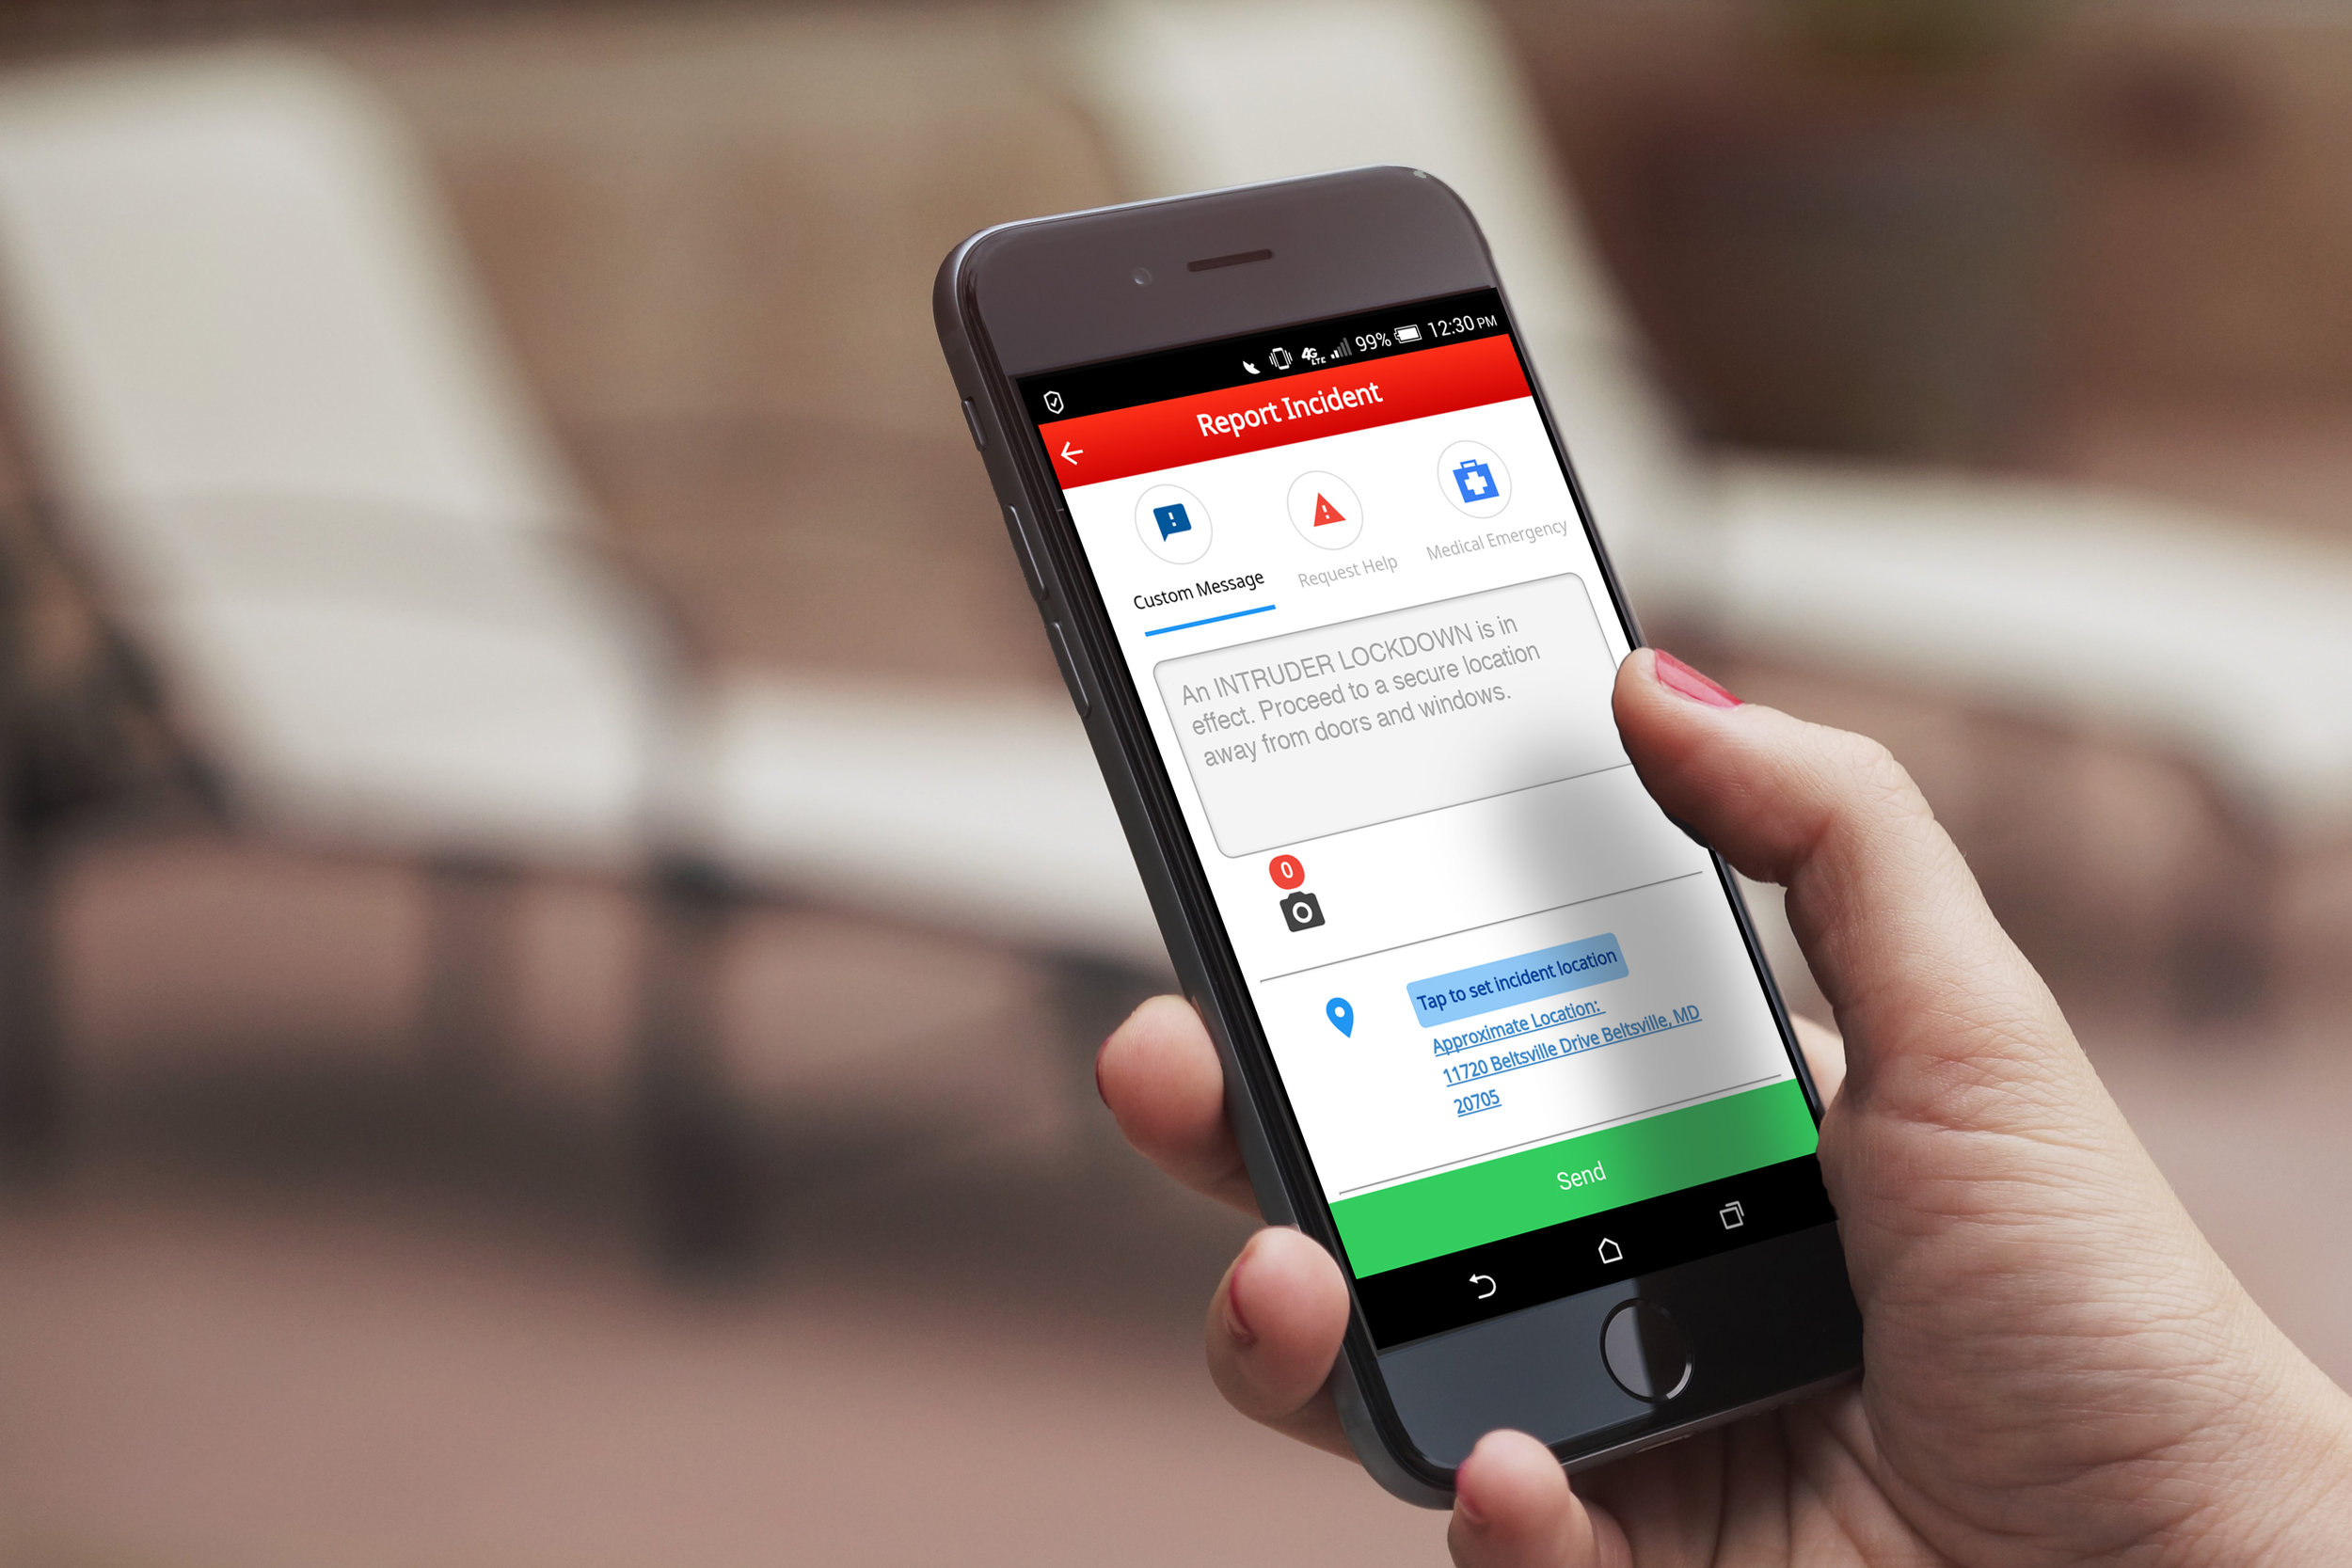 Alertus Recipient App can send geo-tagged incident reports to emergency management.